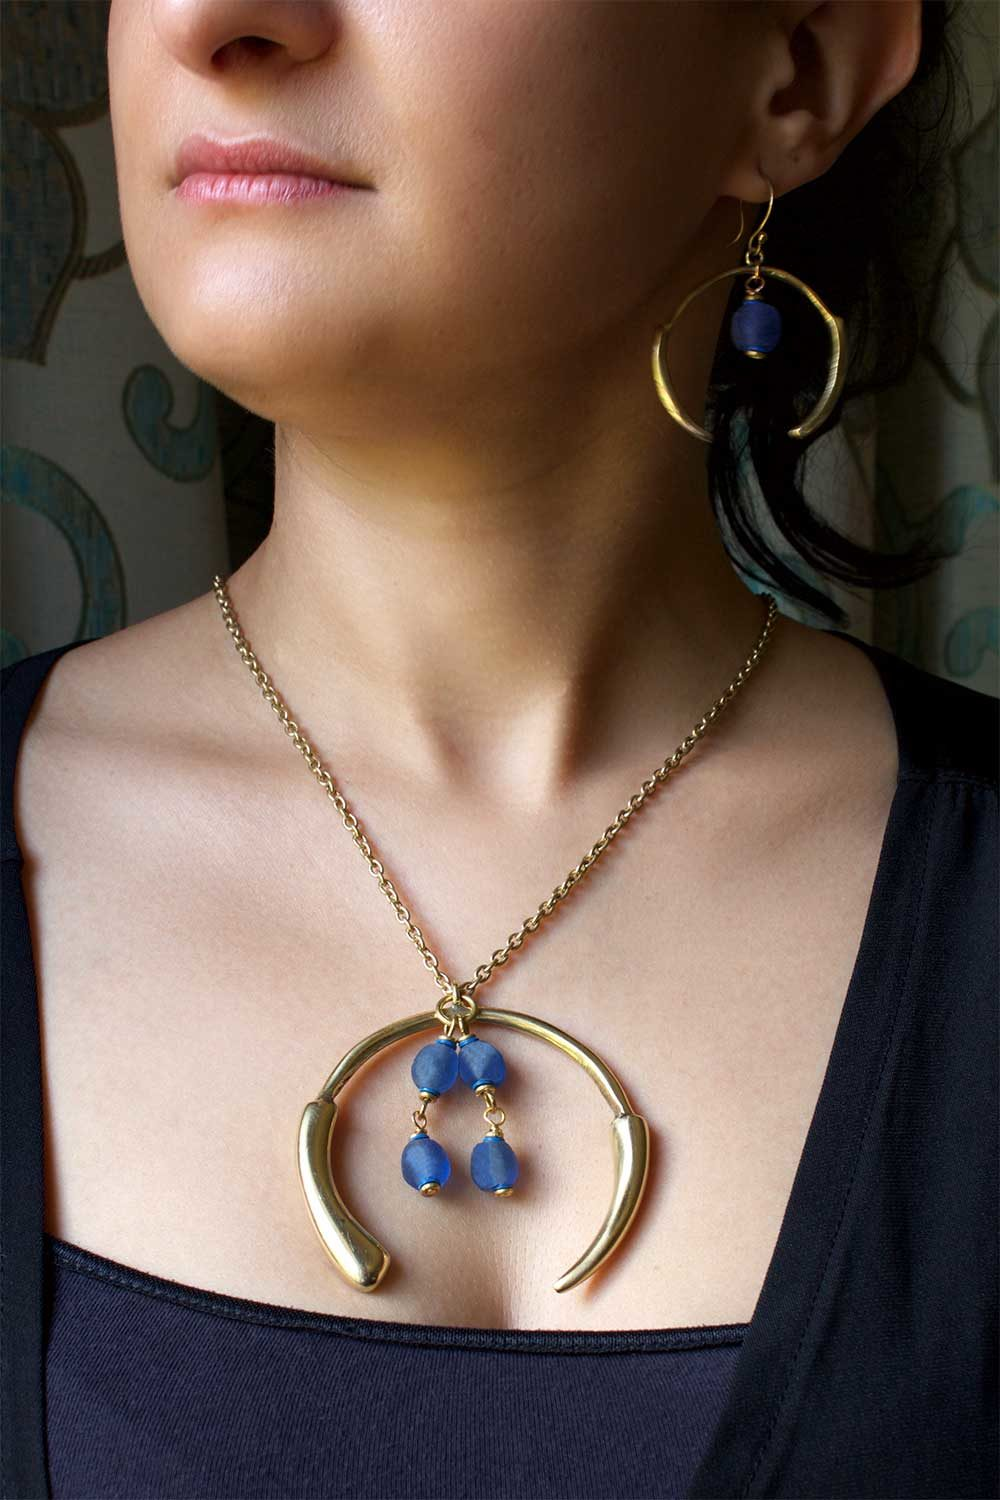 Blue Aza Necklace on Chain model by SHIKHAZURI